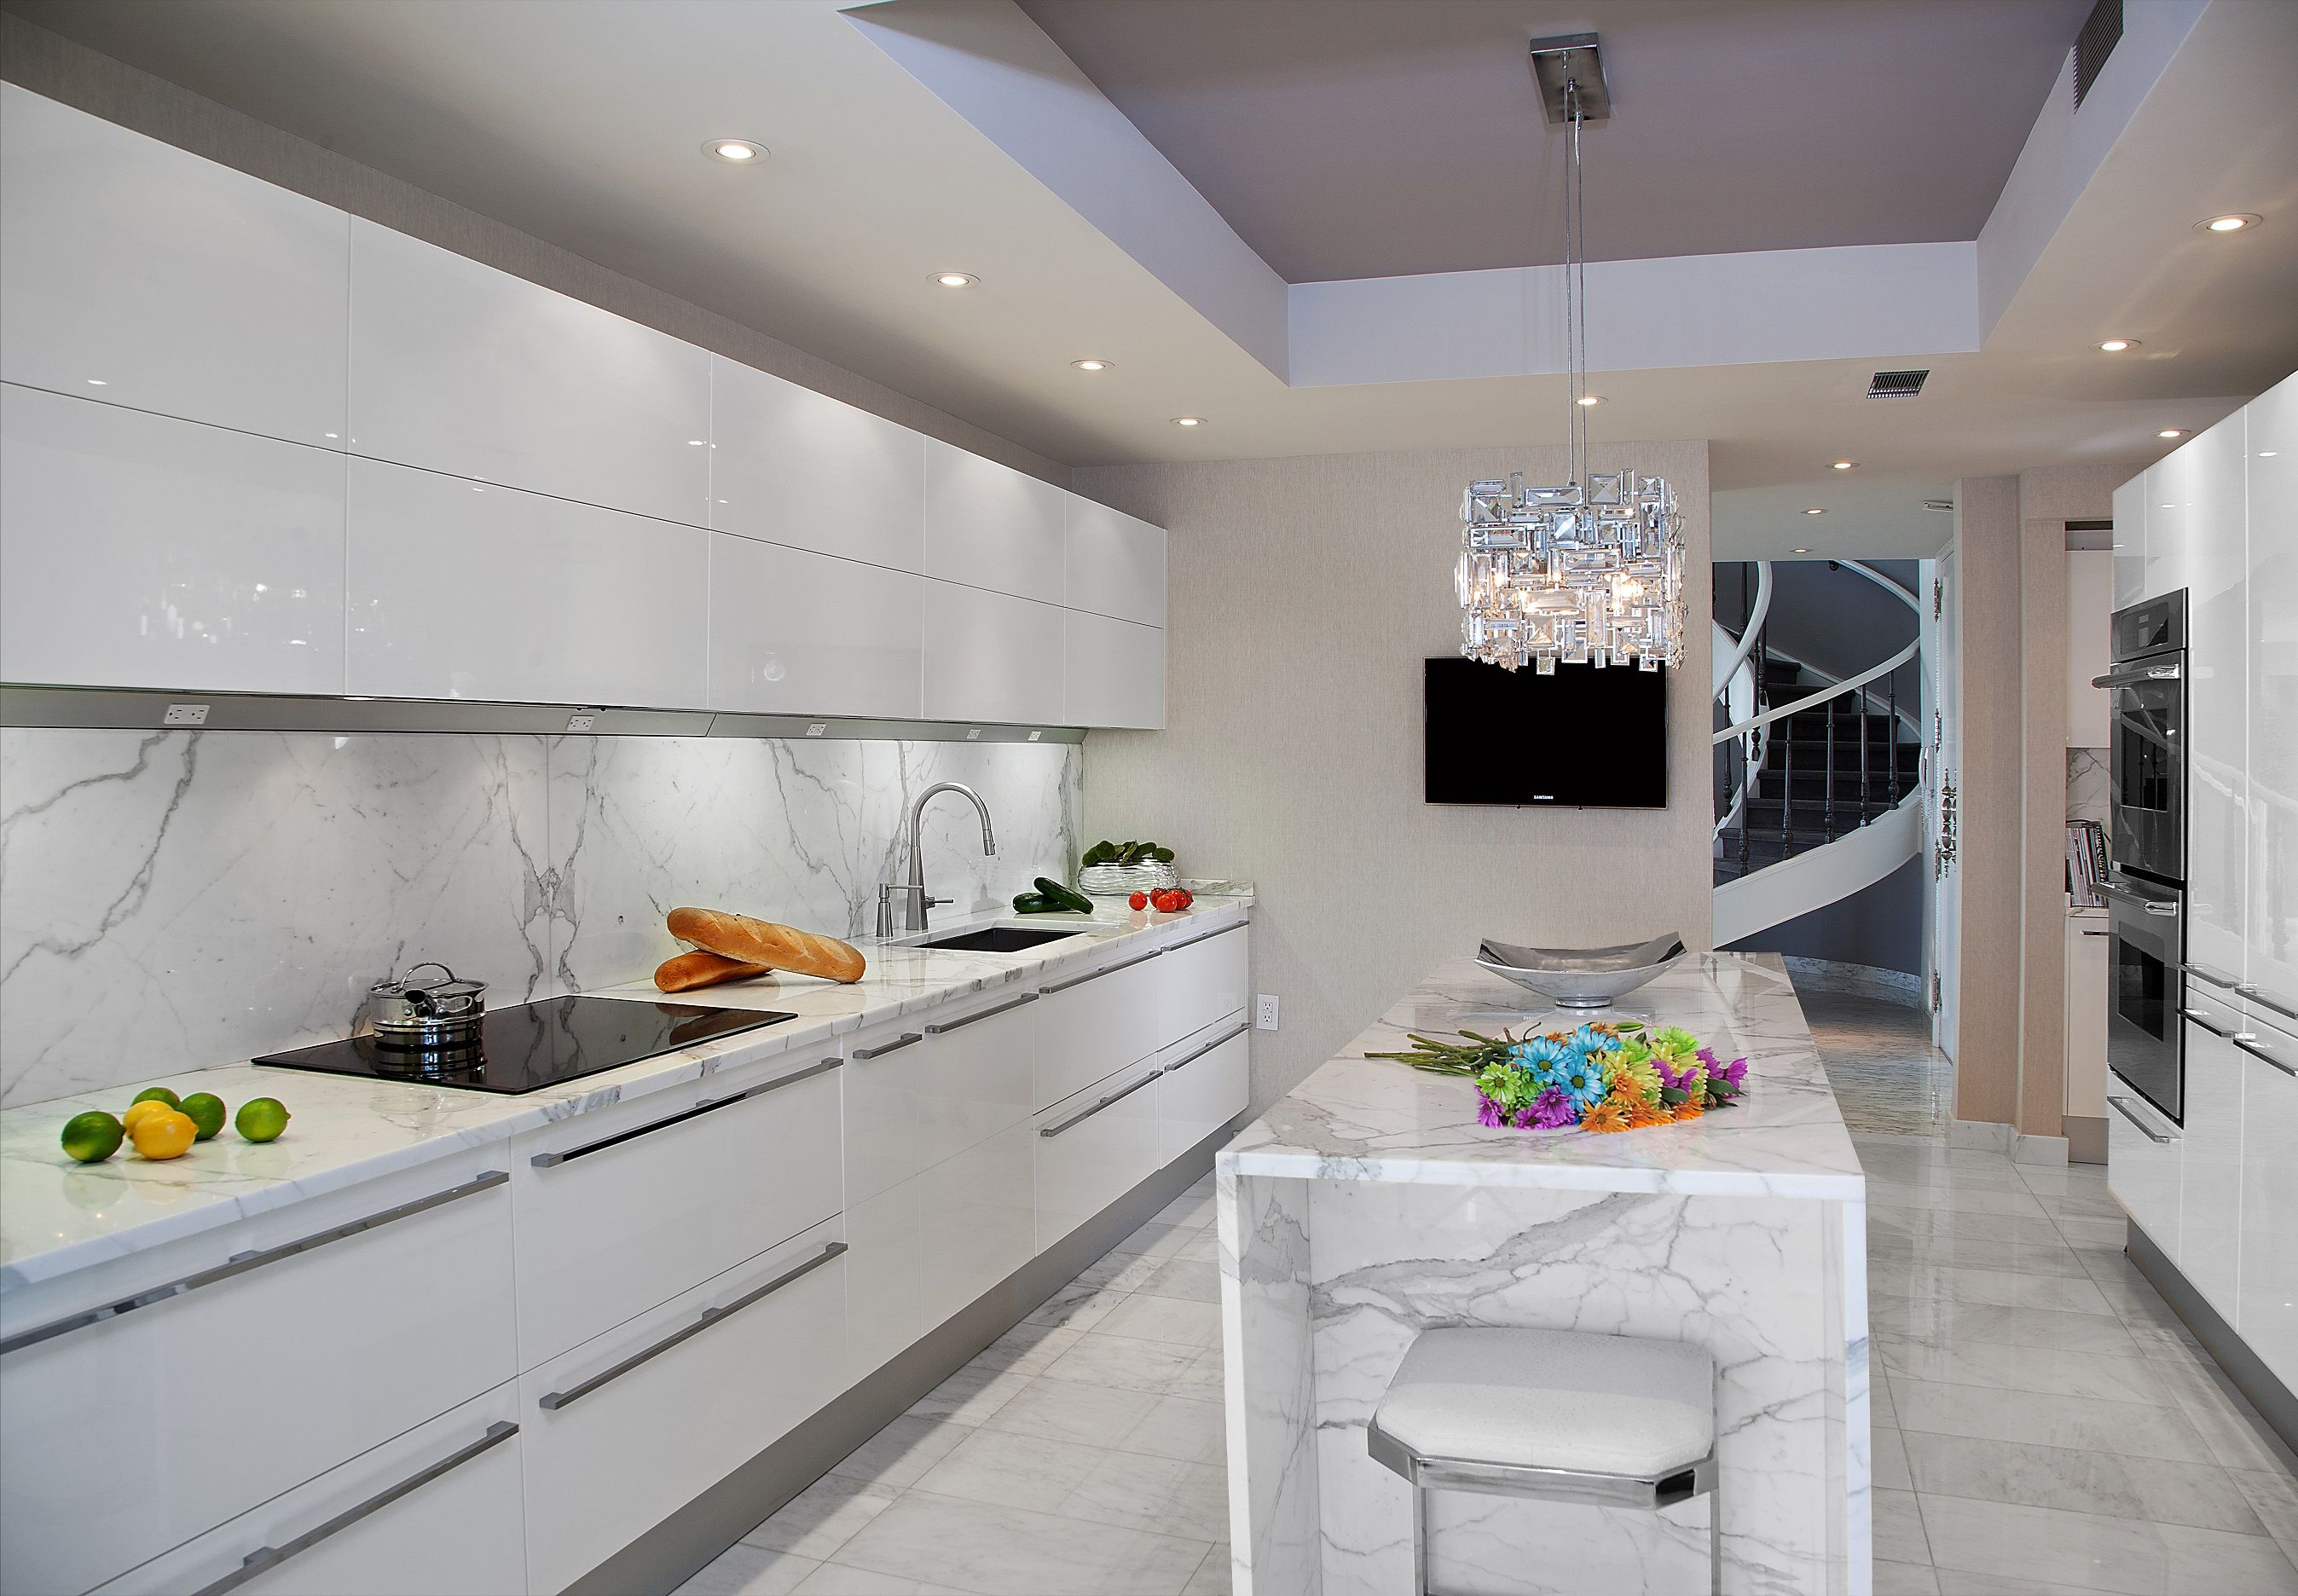 Modern Kitchen Designed By Kuche Cucina From Paramus Nj Pedini